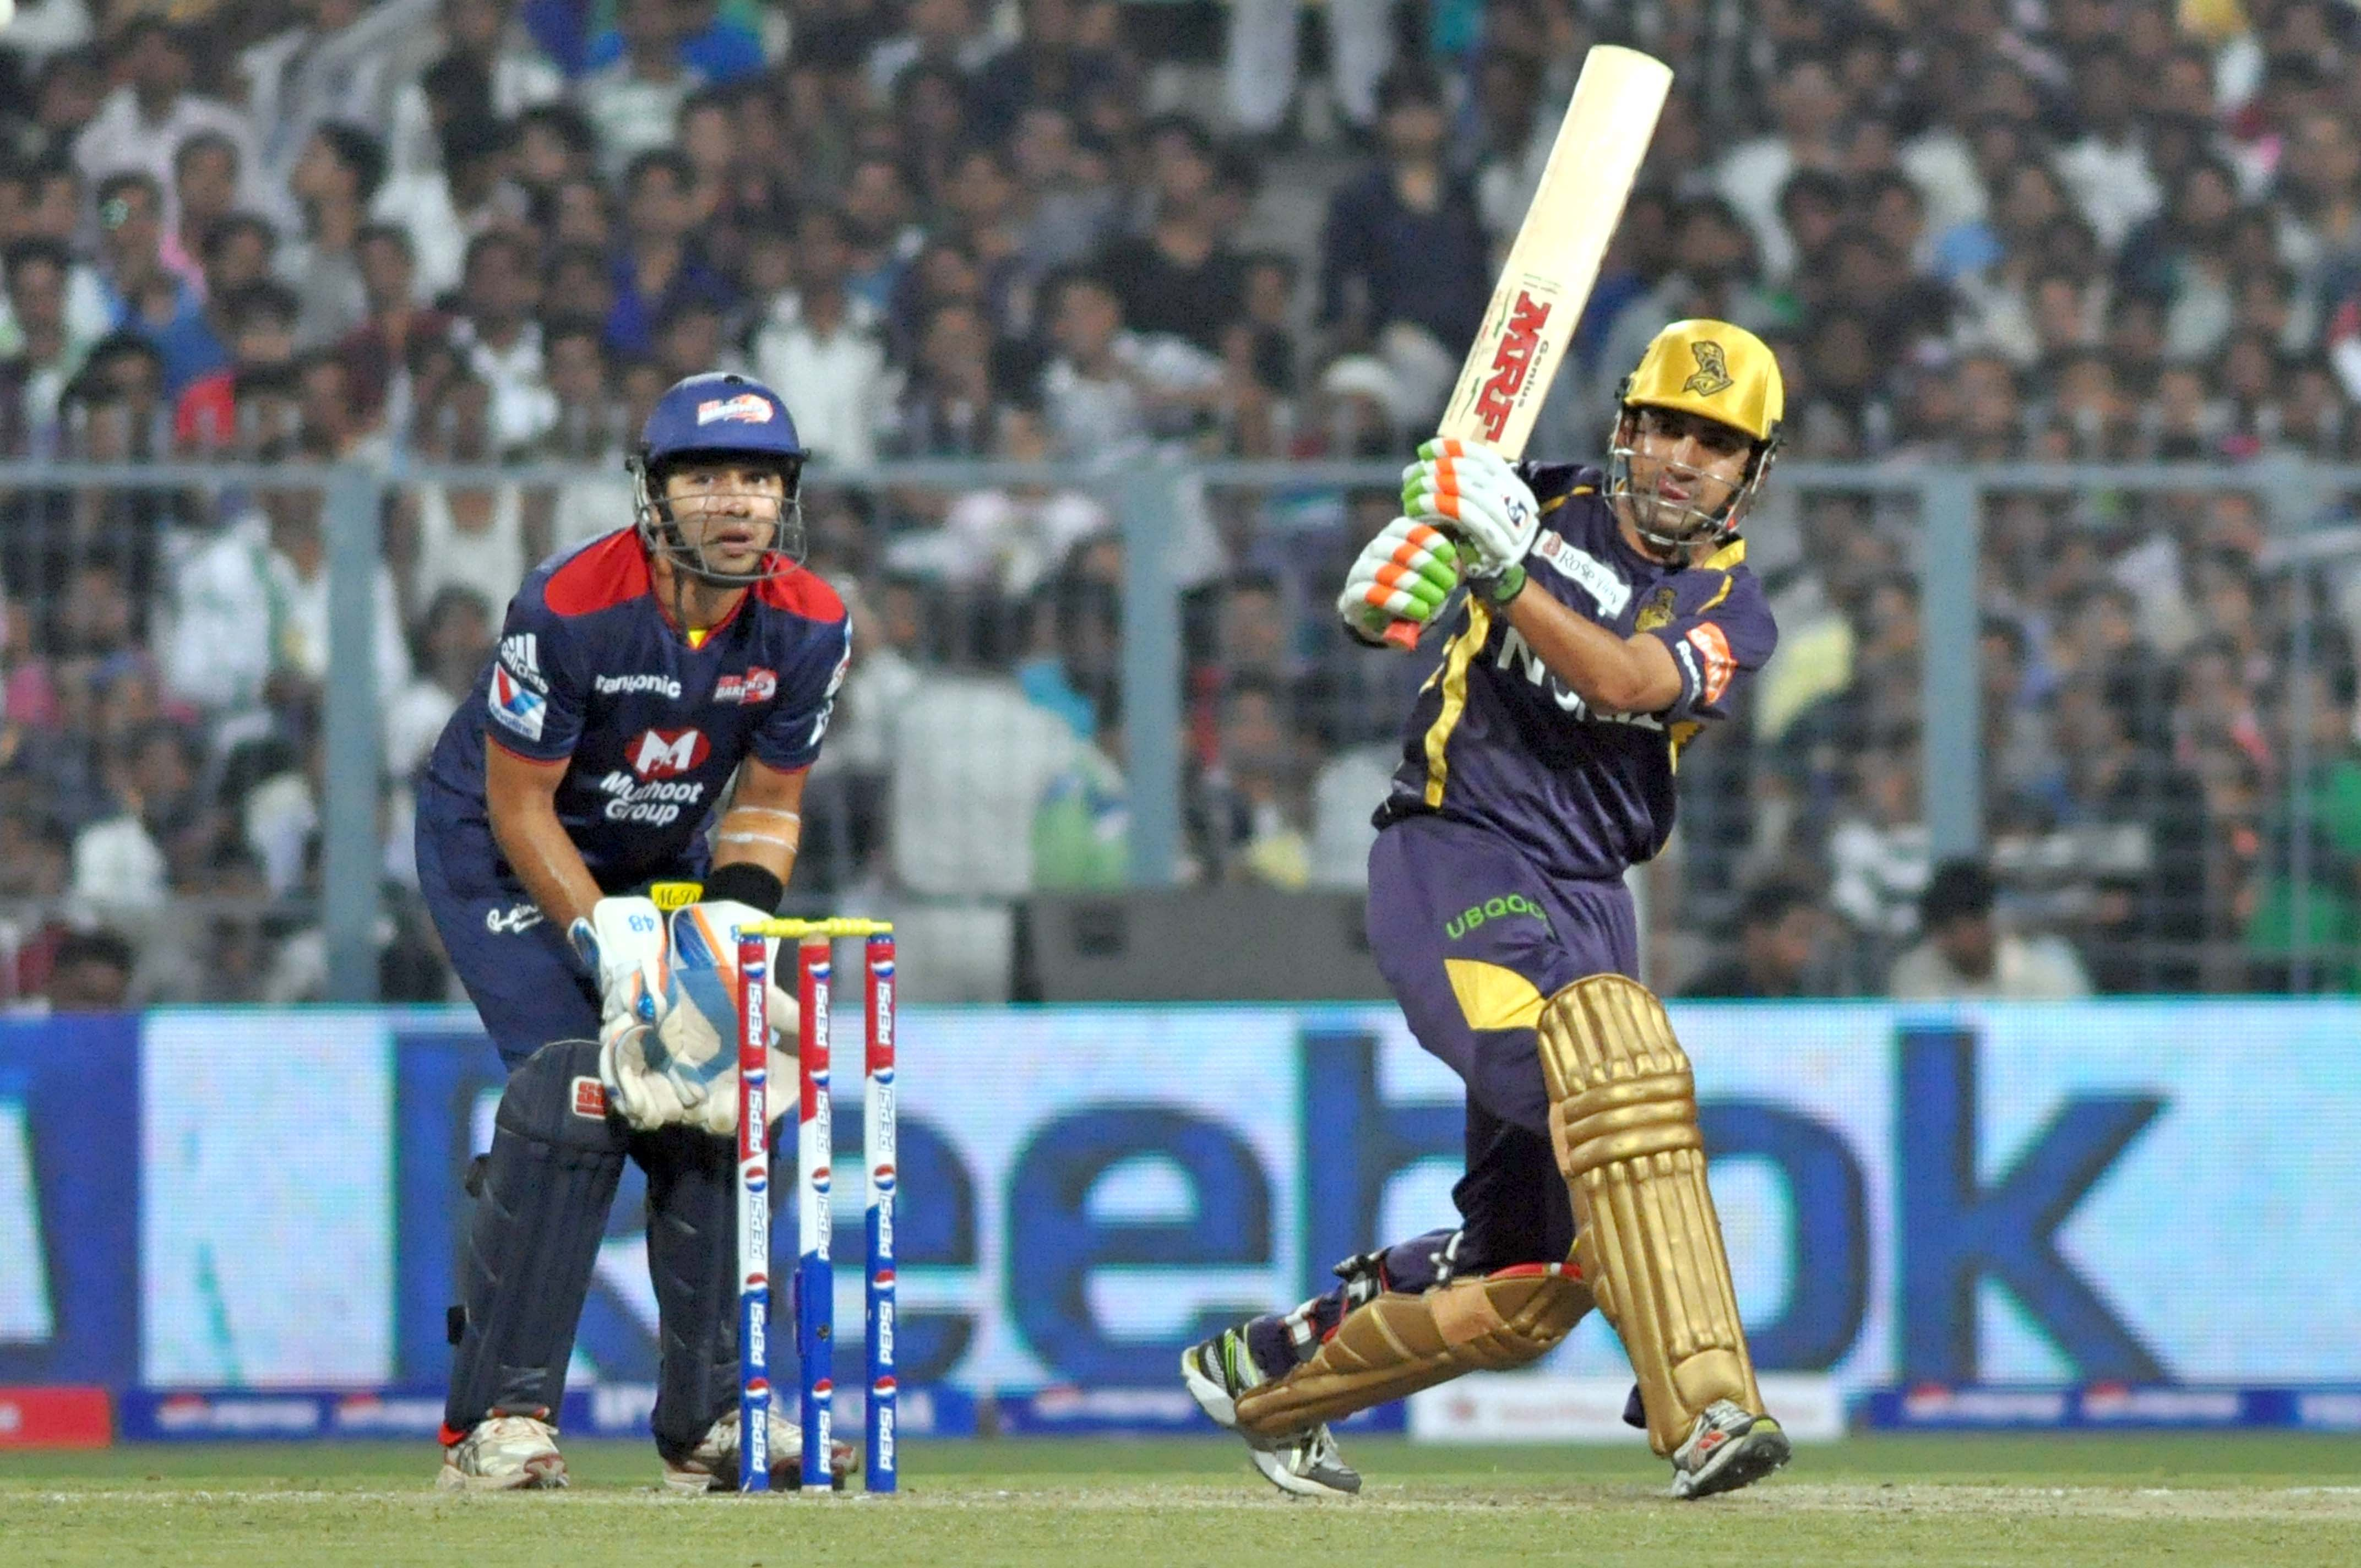 Kolkata Knight Riders captain Gautam Gambhir in action during IPL T-20 match between KKR and DD at Eden Gardens in Kolkata on April 3, 2013. (Photo: IANS)